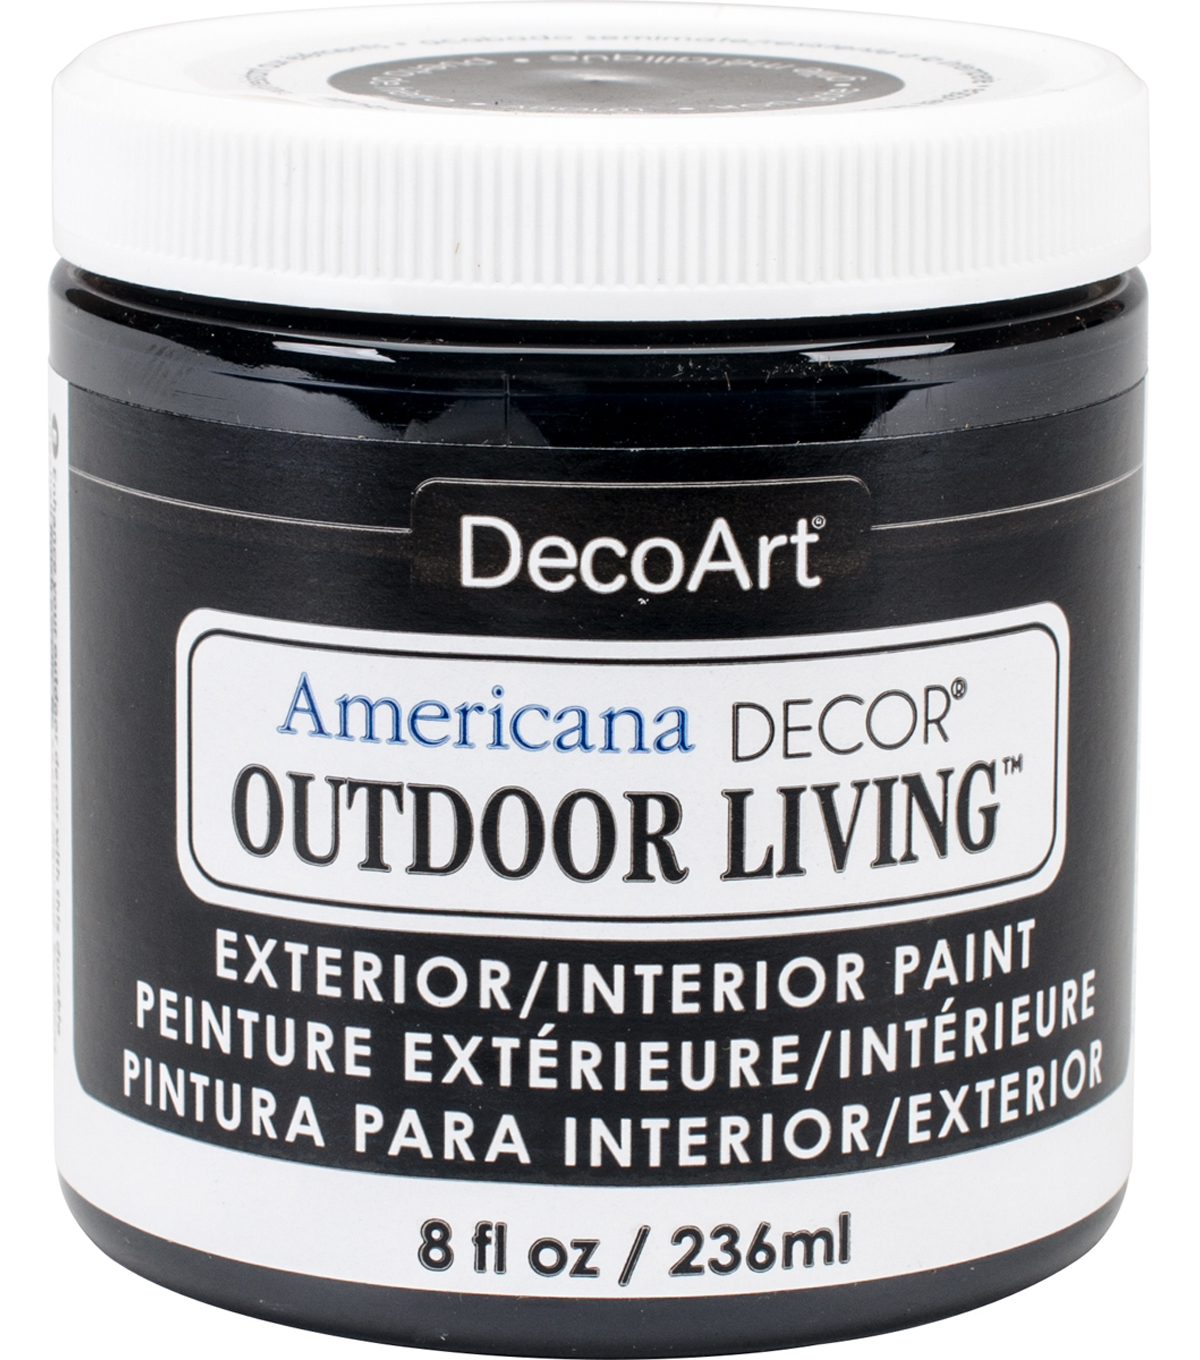 DecoArt Americana Decor Outdoor Living Paint 8oz